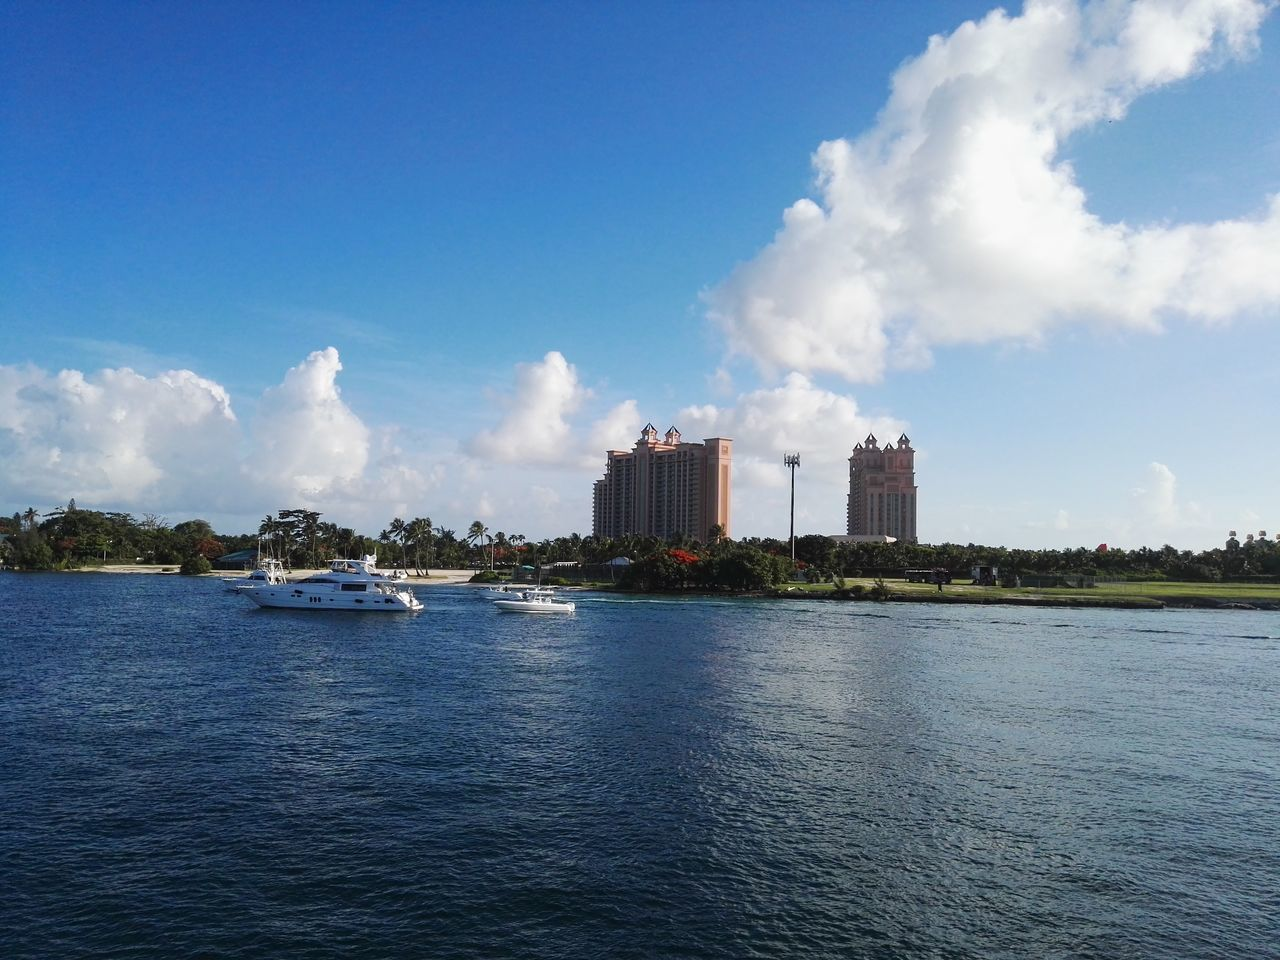 outdoors Architecture Beauty In Nature Building Exterior Built Structure Cloud - Sky Day Nautical Vessel No People Outdoors Paradise Island Bahamas Scenics Sea Sky Water Waterfront